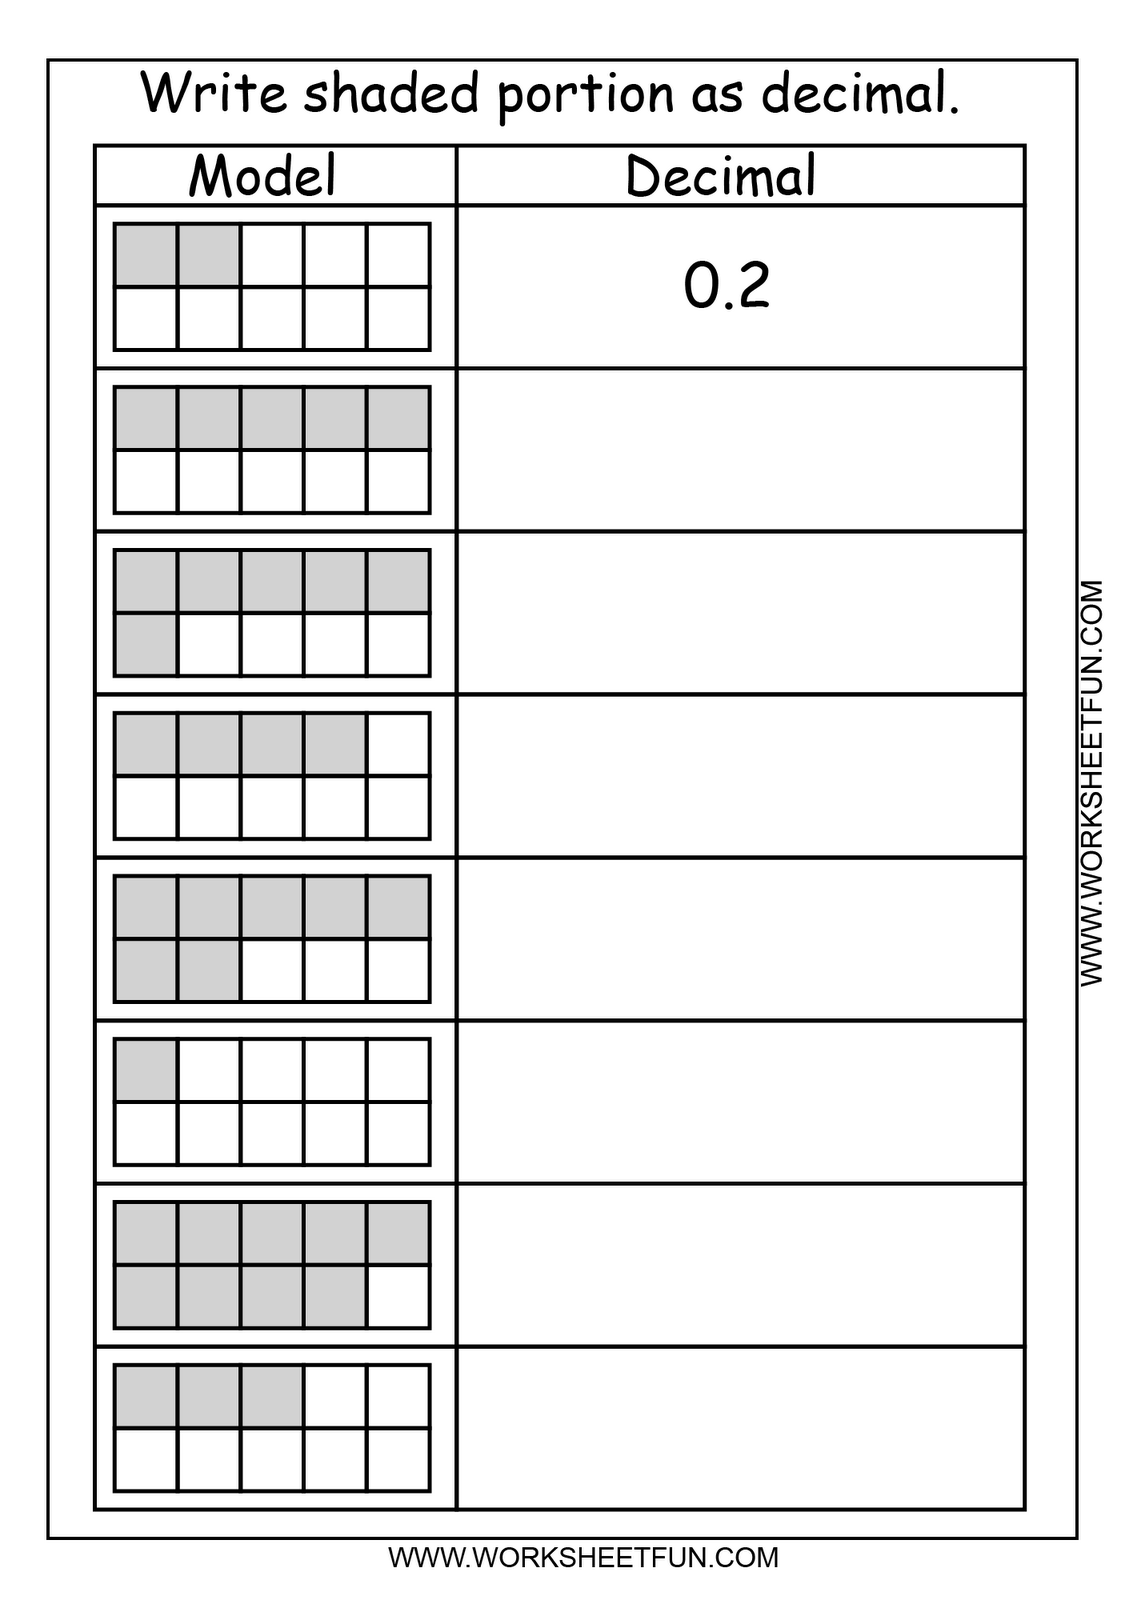 Worksheetfun - FREE PRINTABLE WORKSHEETS   Fractions [ 1600 x 1125 Pixel ]